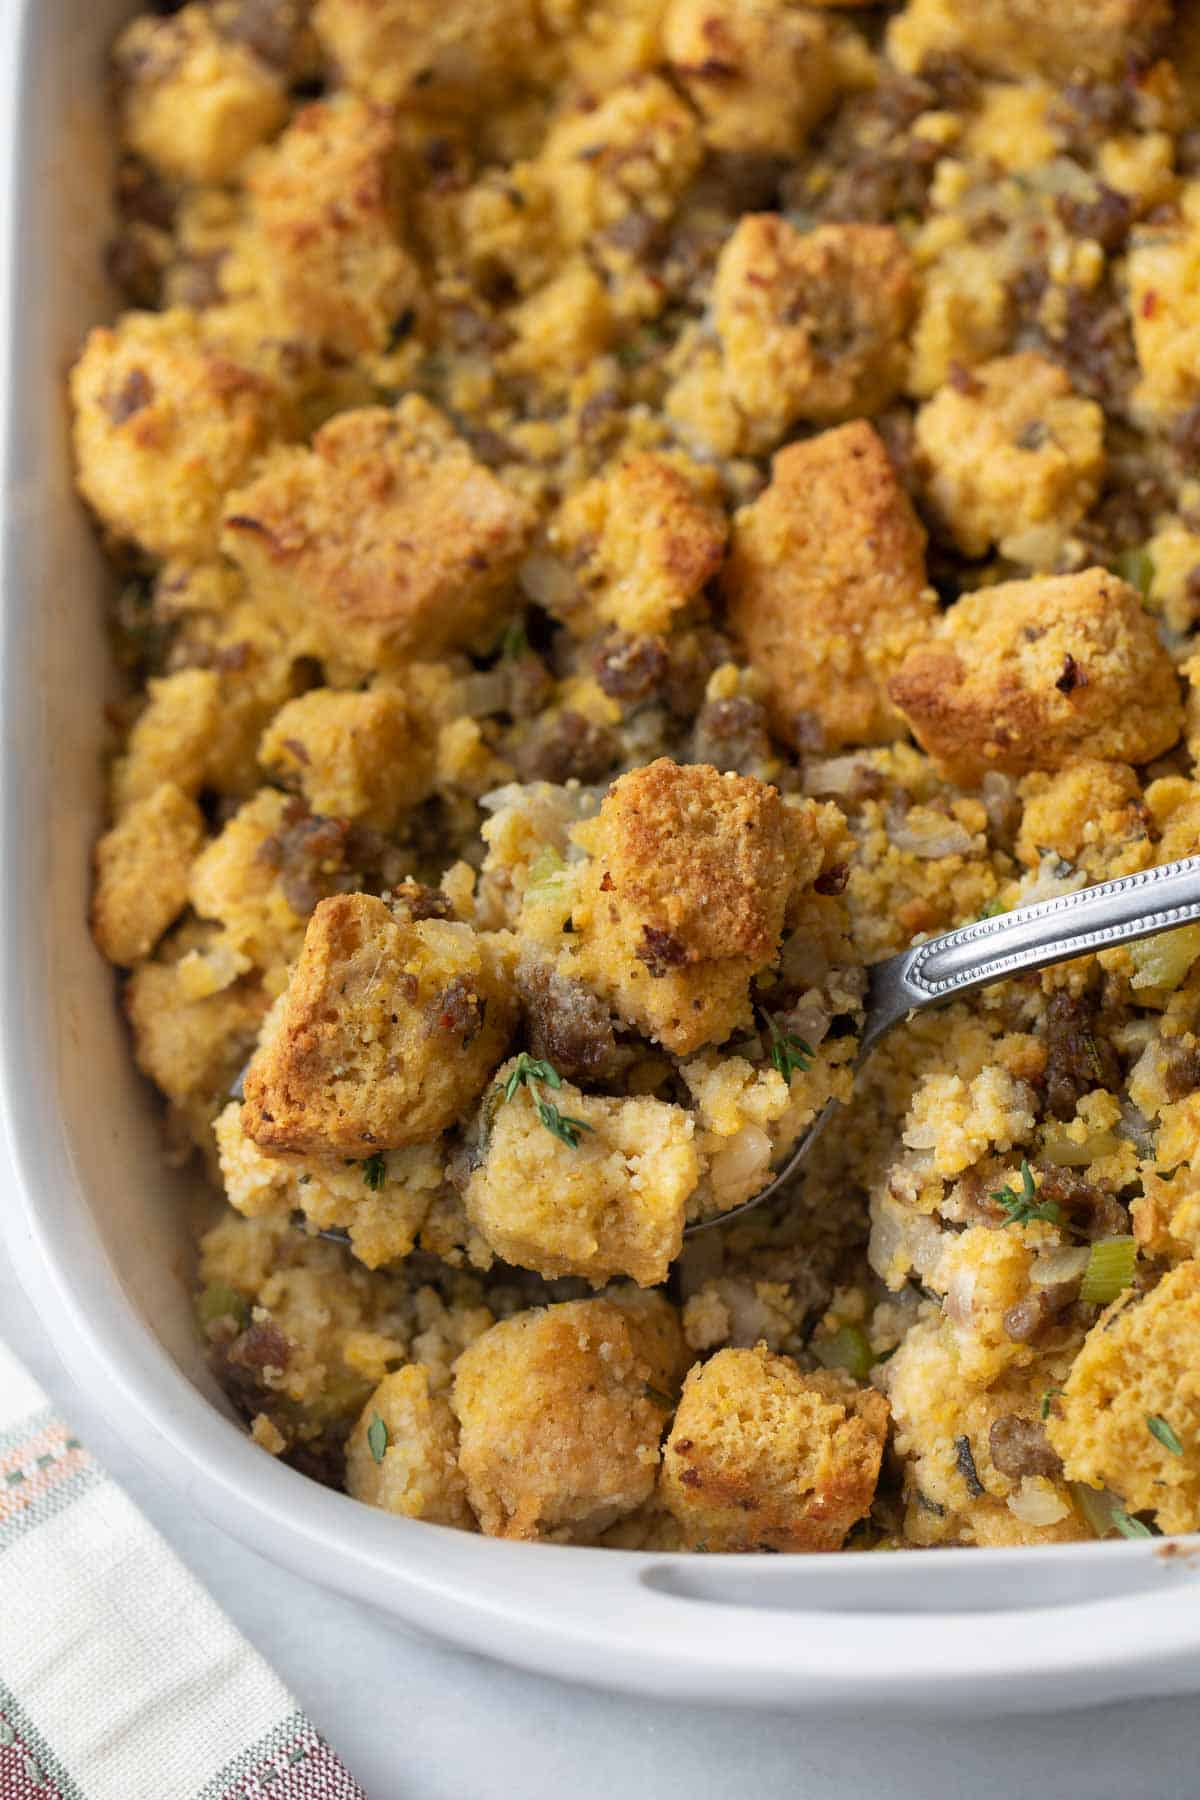 silver spoon scooping gluten-free cornbread sausage stuffing out of white casserole dish